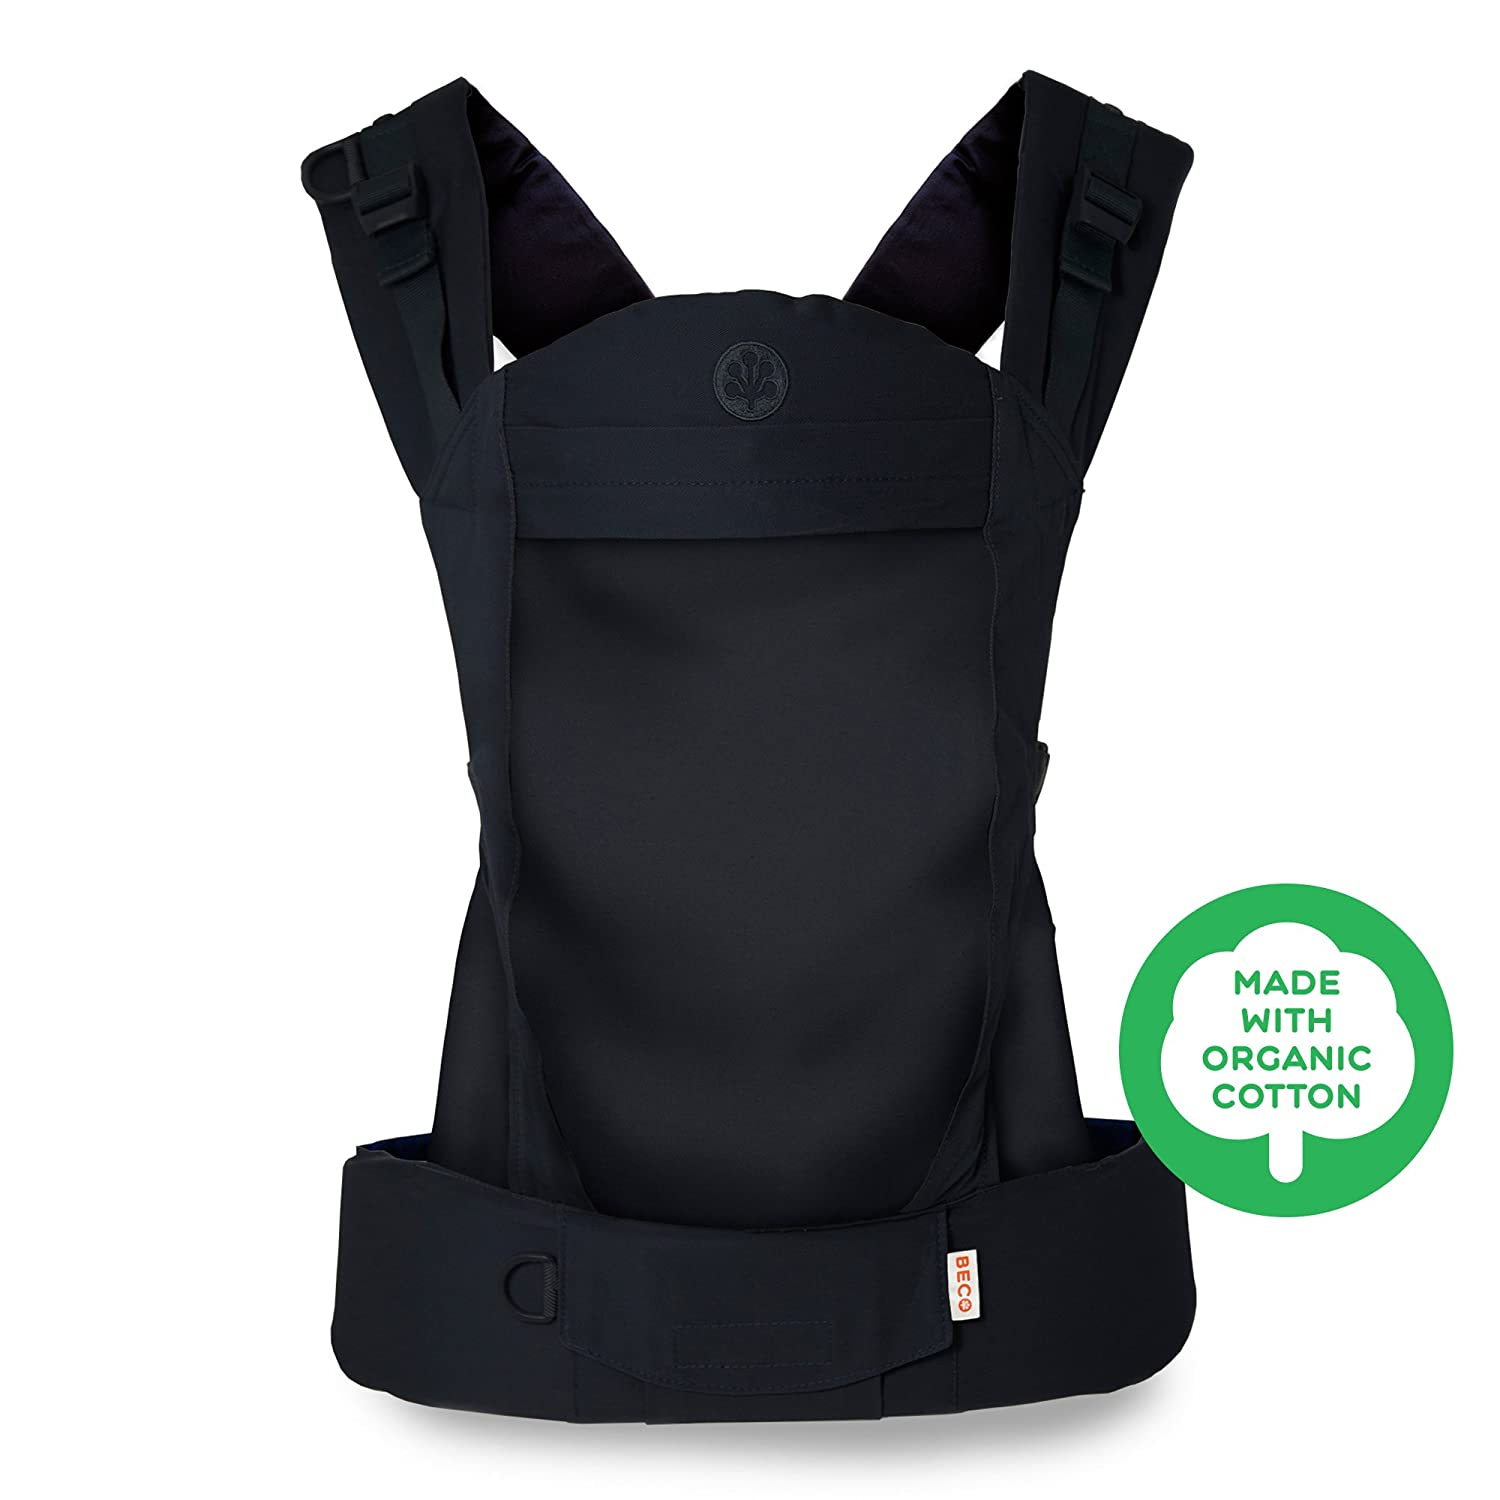 5b878d54438 Amazon.com   Beco Soleil Baby Carrier - Metro Black Organic   Child Carrier  Products   Baby